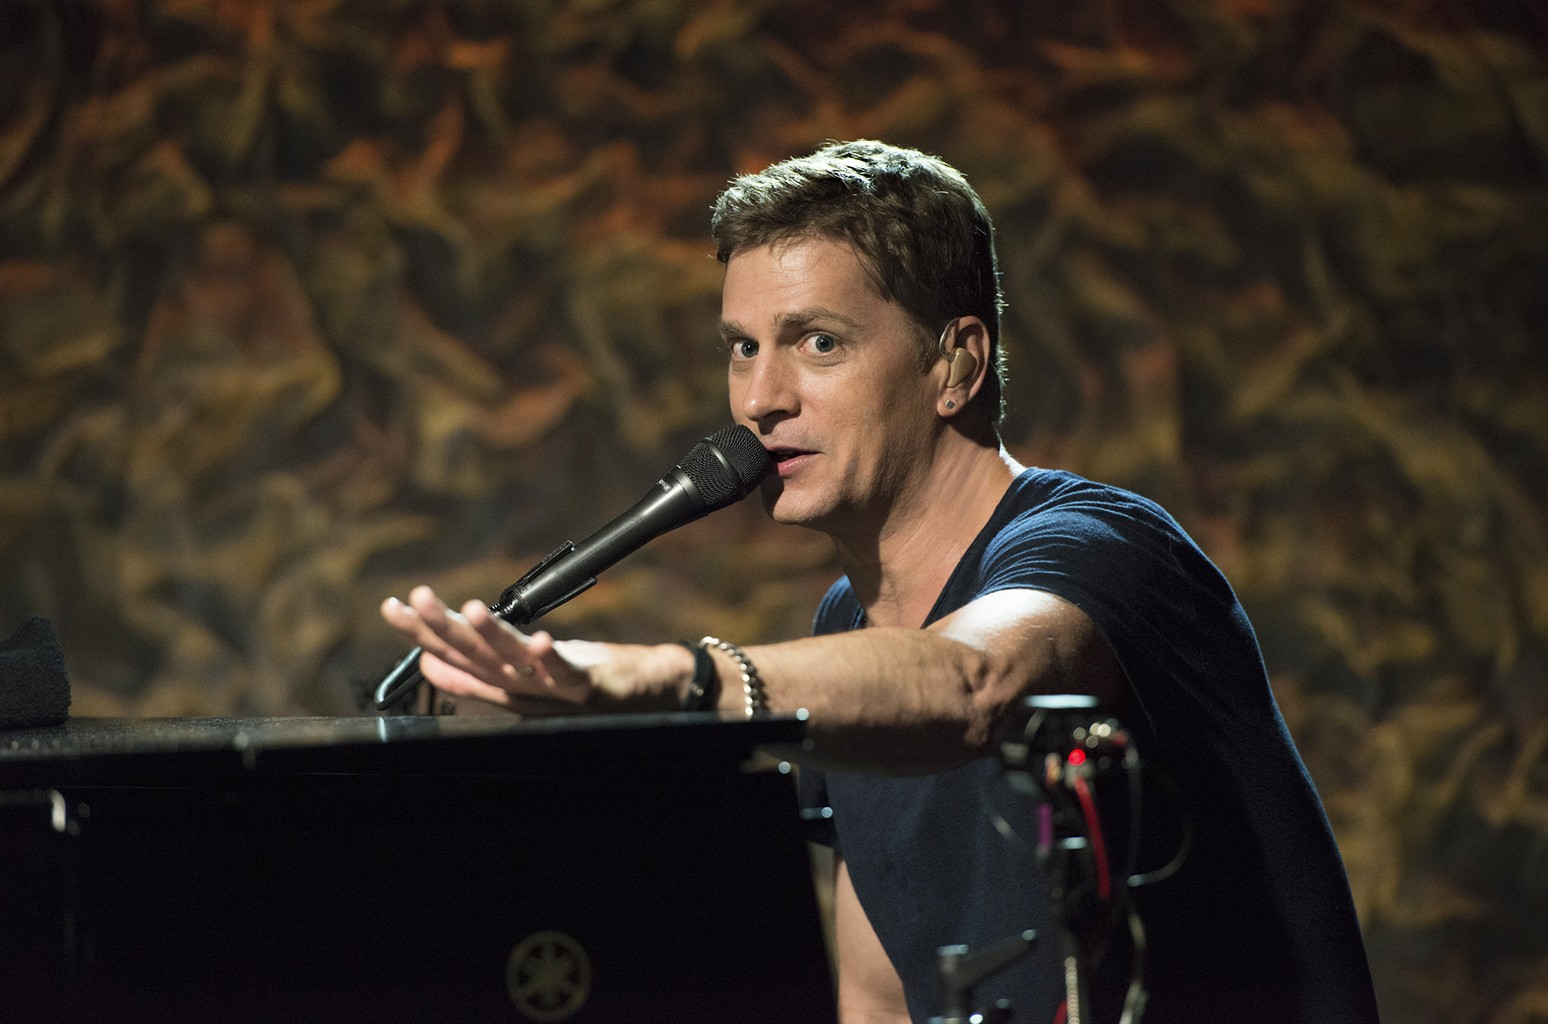 Rob Thomas performs at Iridium in New York City.